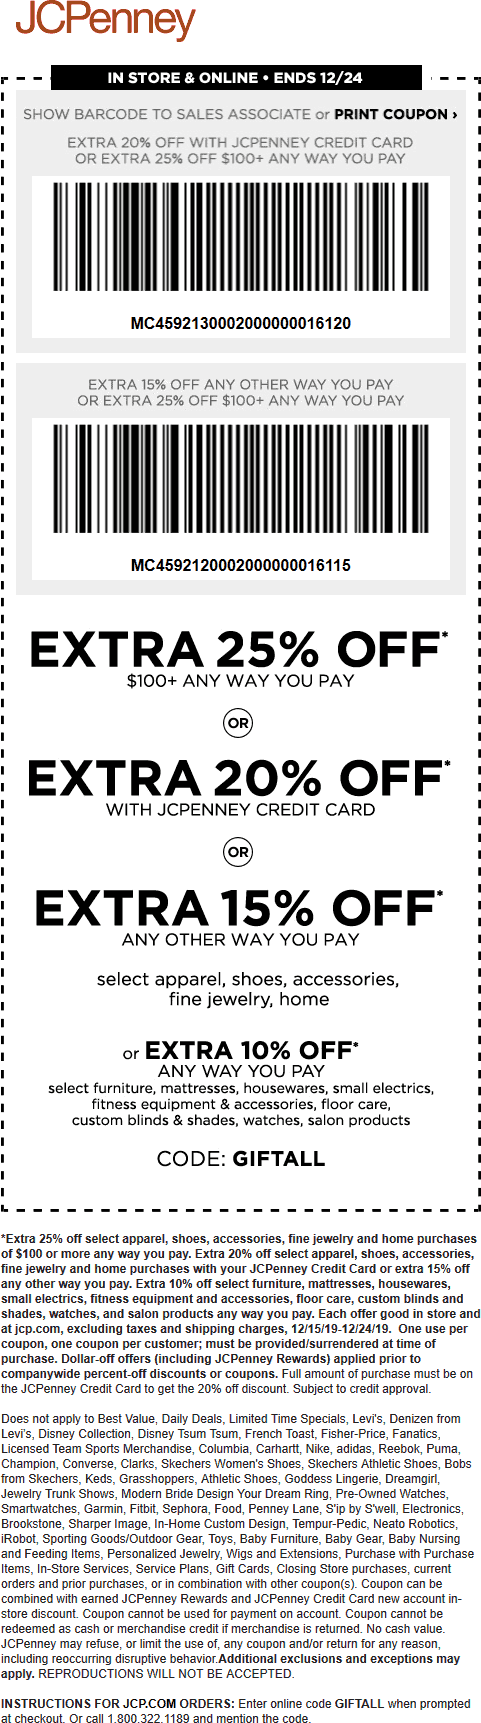 JCPenney Coupon January 2020 15-25% off at JCPenney, or online via promo code GIFTALL